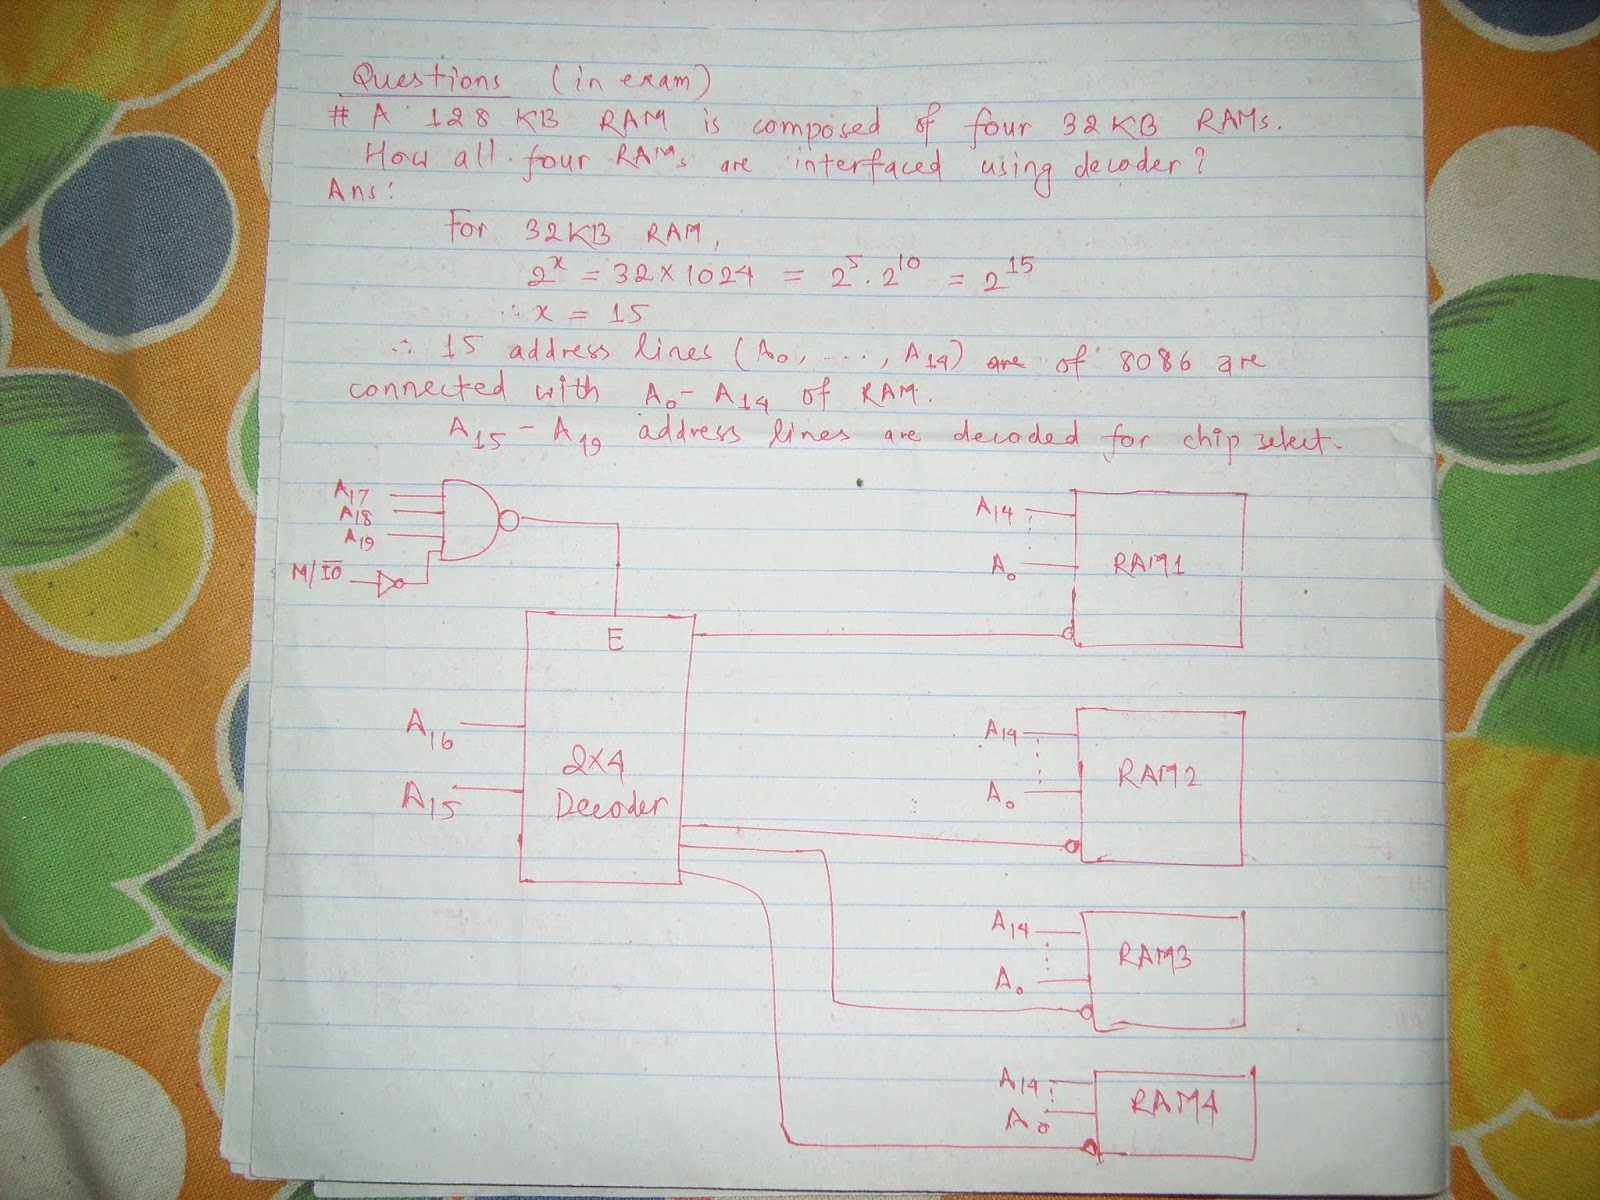 Functional Block Diagram Of 8086 Microprocessor Car Sound System Education For All Address Decoding Example